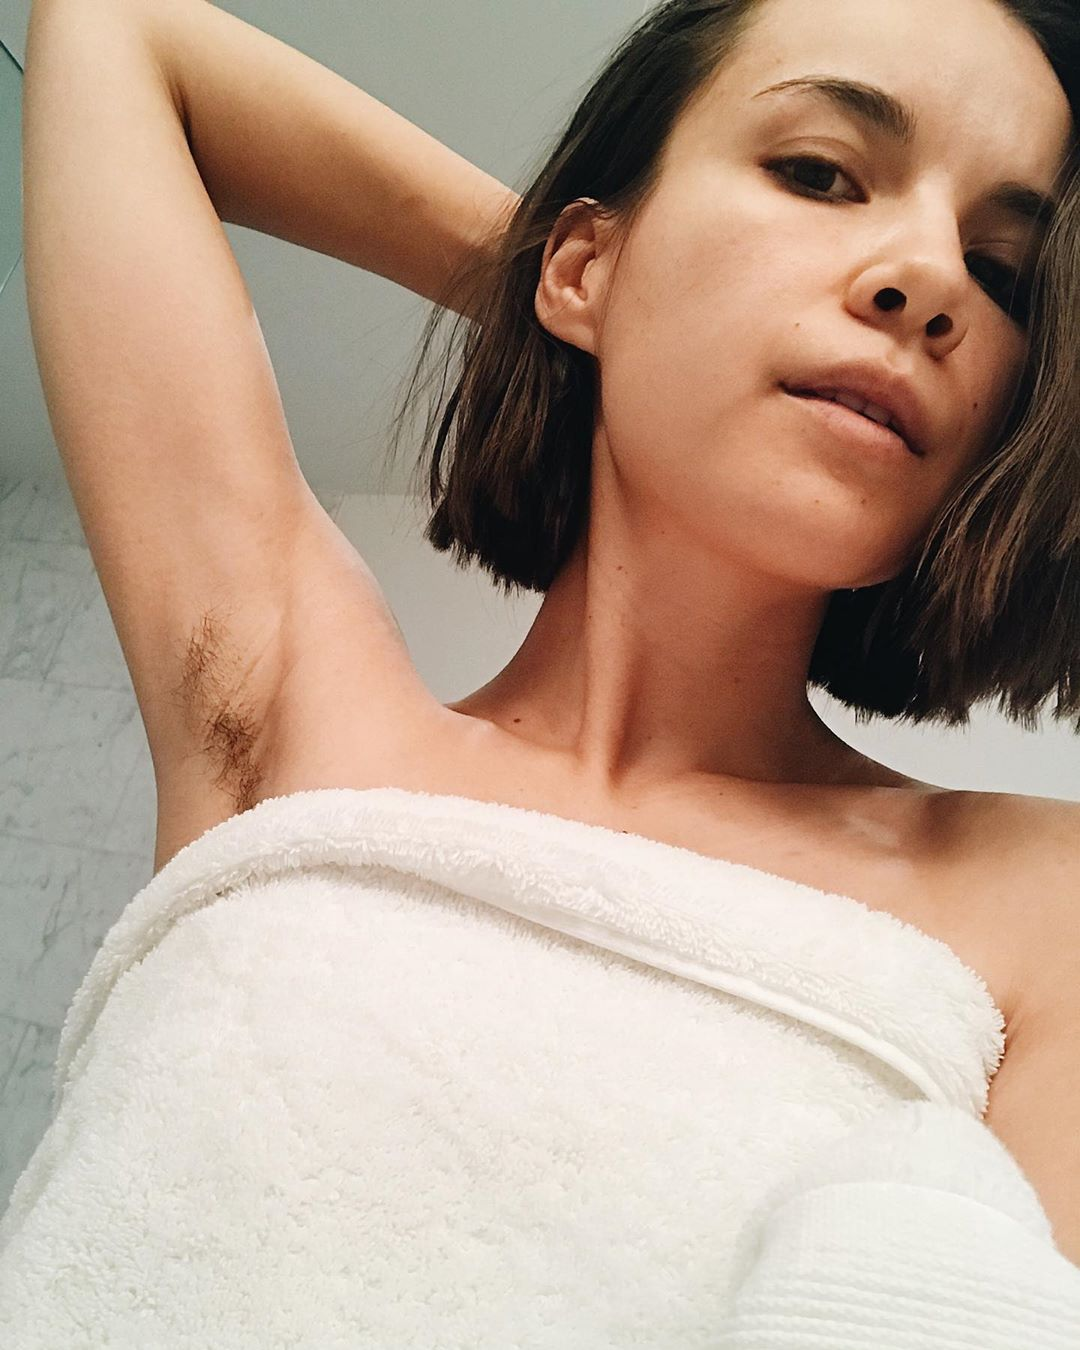 This Beauty YouTuber Reveals the Powerful Reason Why She Stopped Shaving Her Armpit Hair